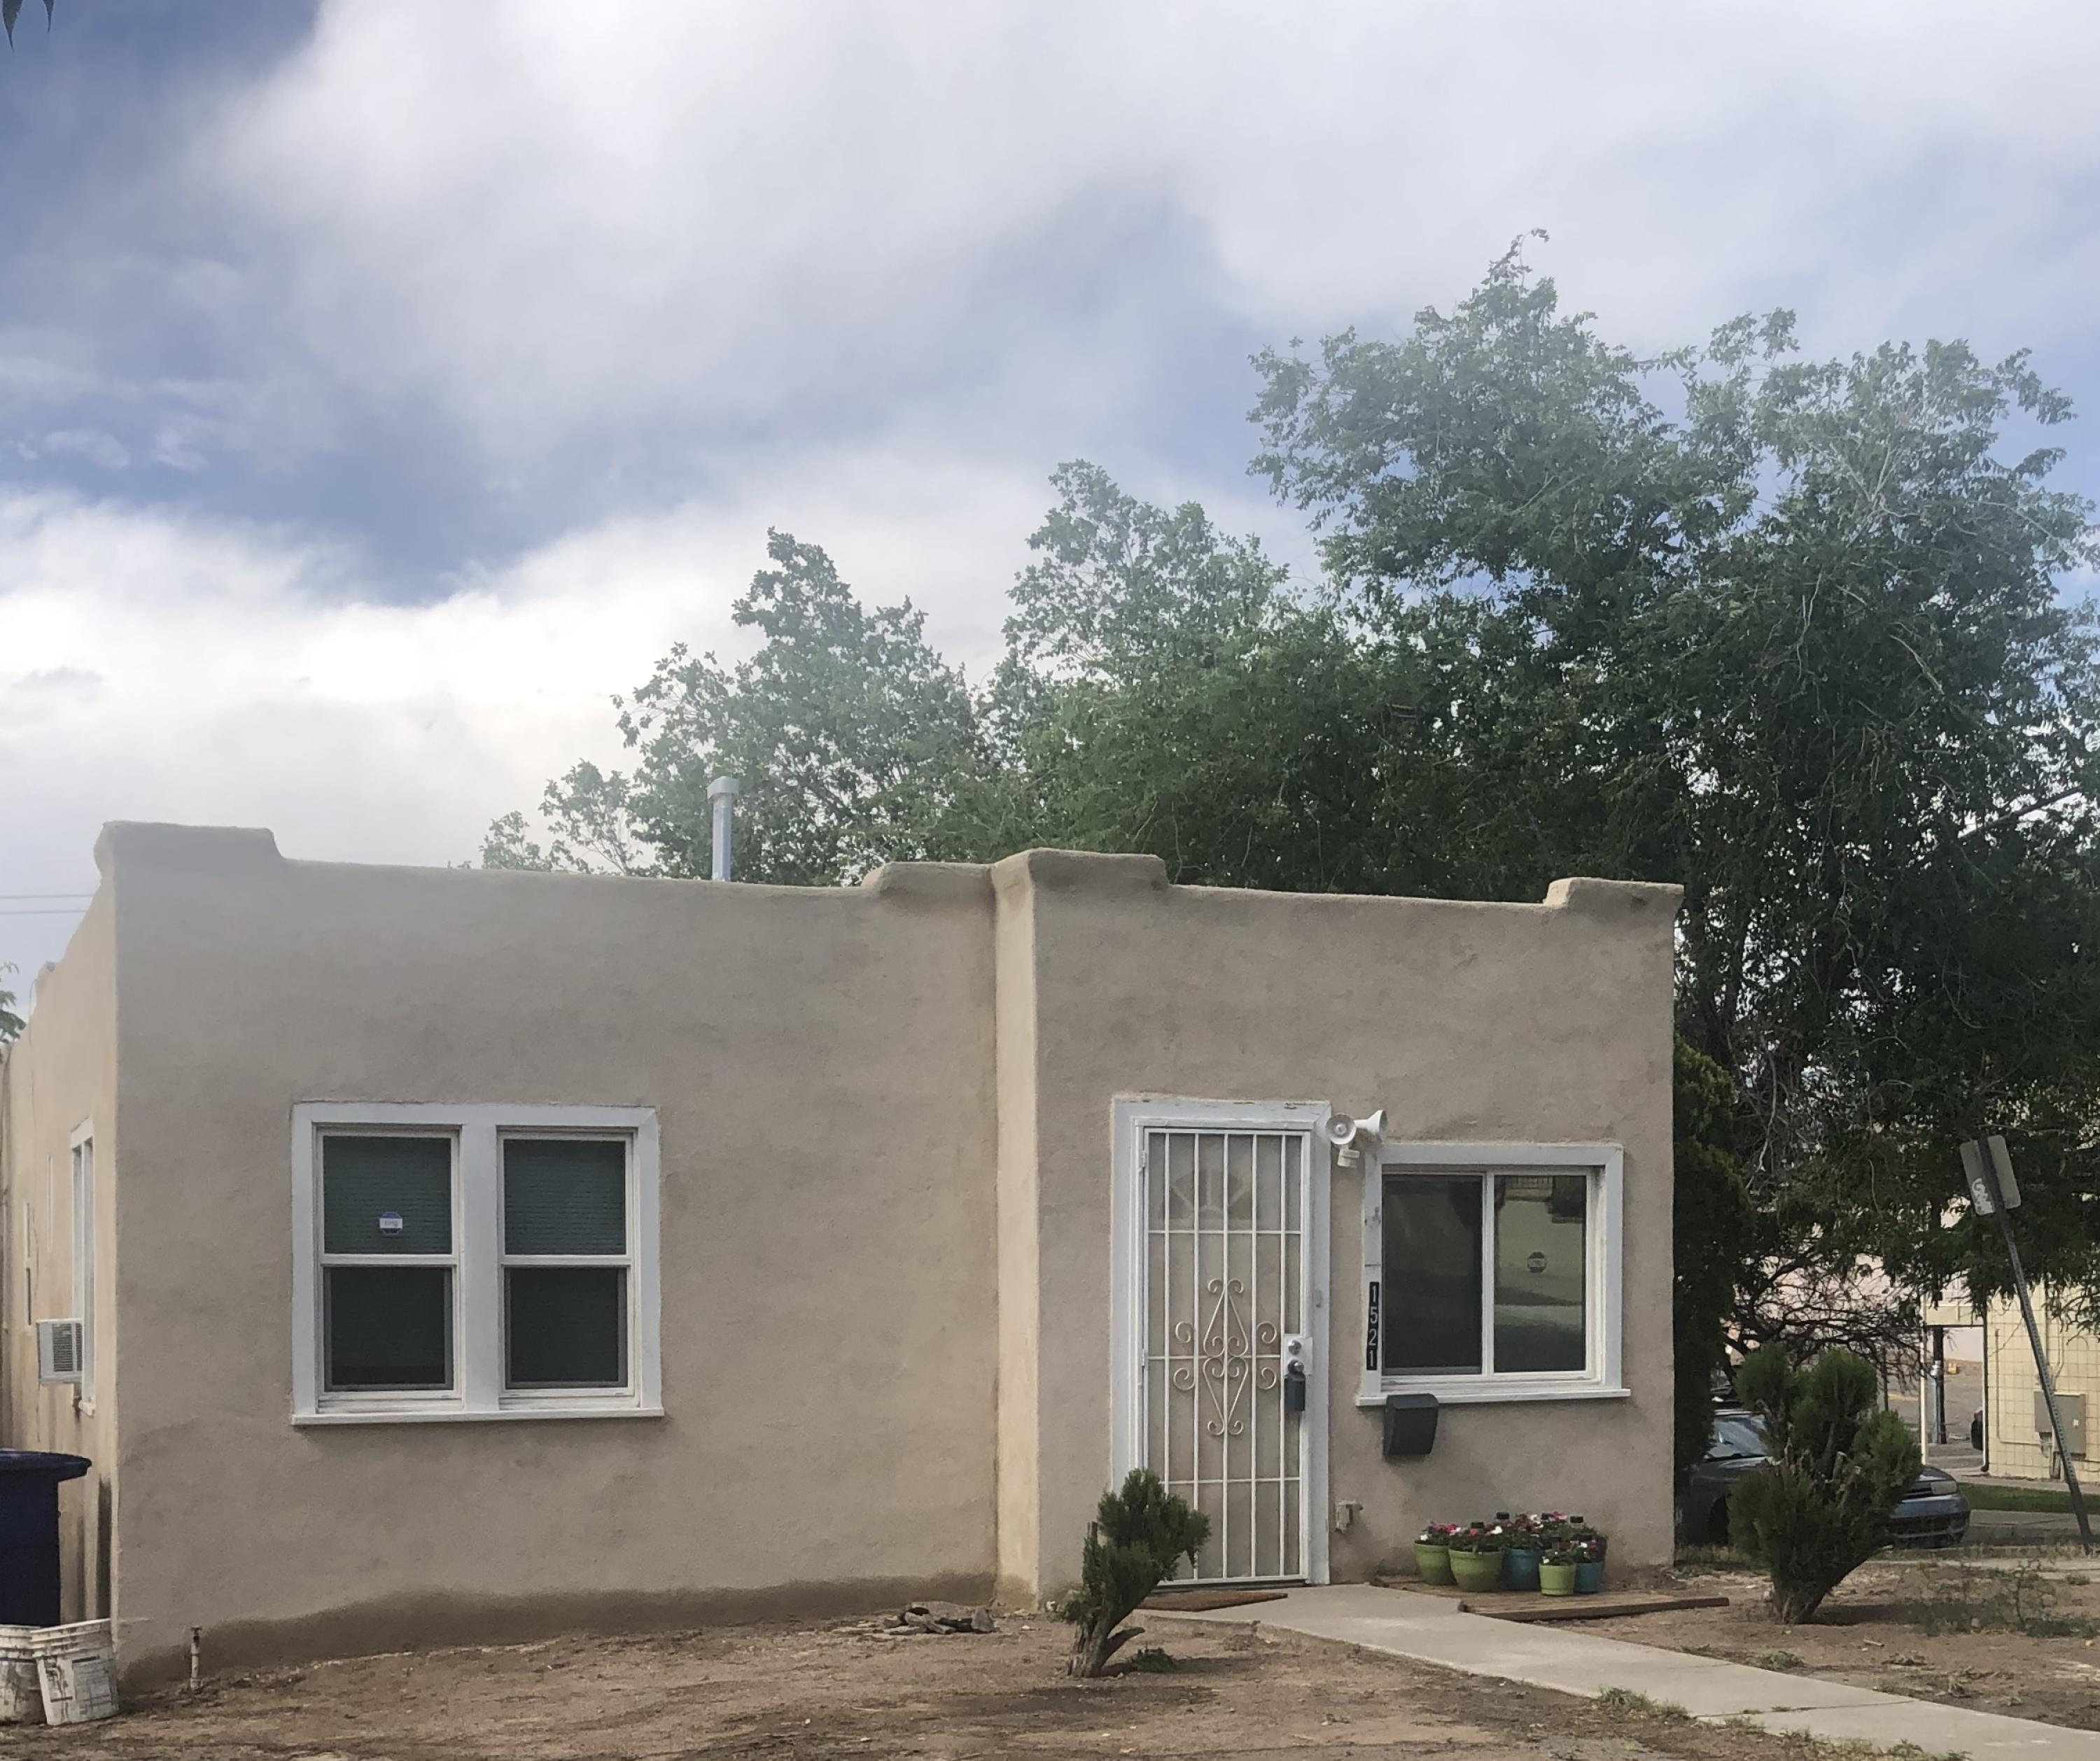 1521 GOLD Avenue SE, Albuquerque, NM 87106 - Albuquerque, NM real estate listing